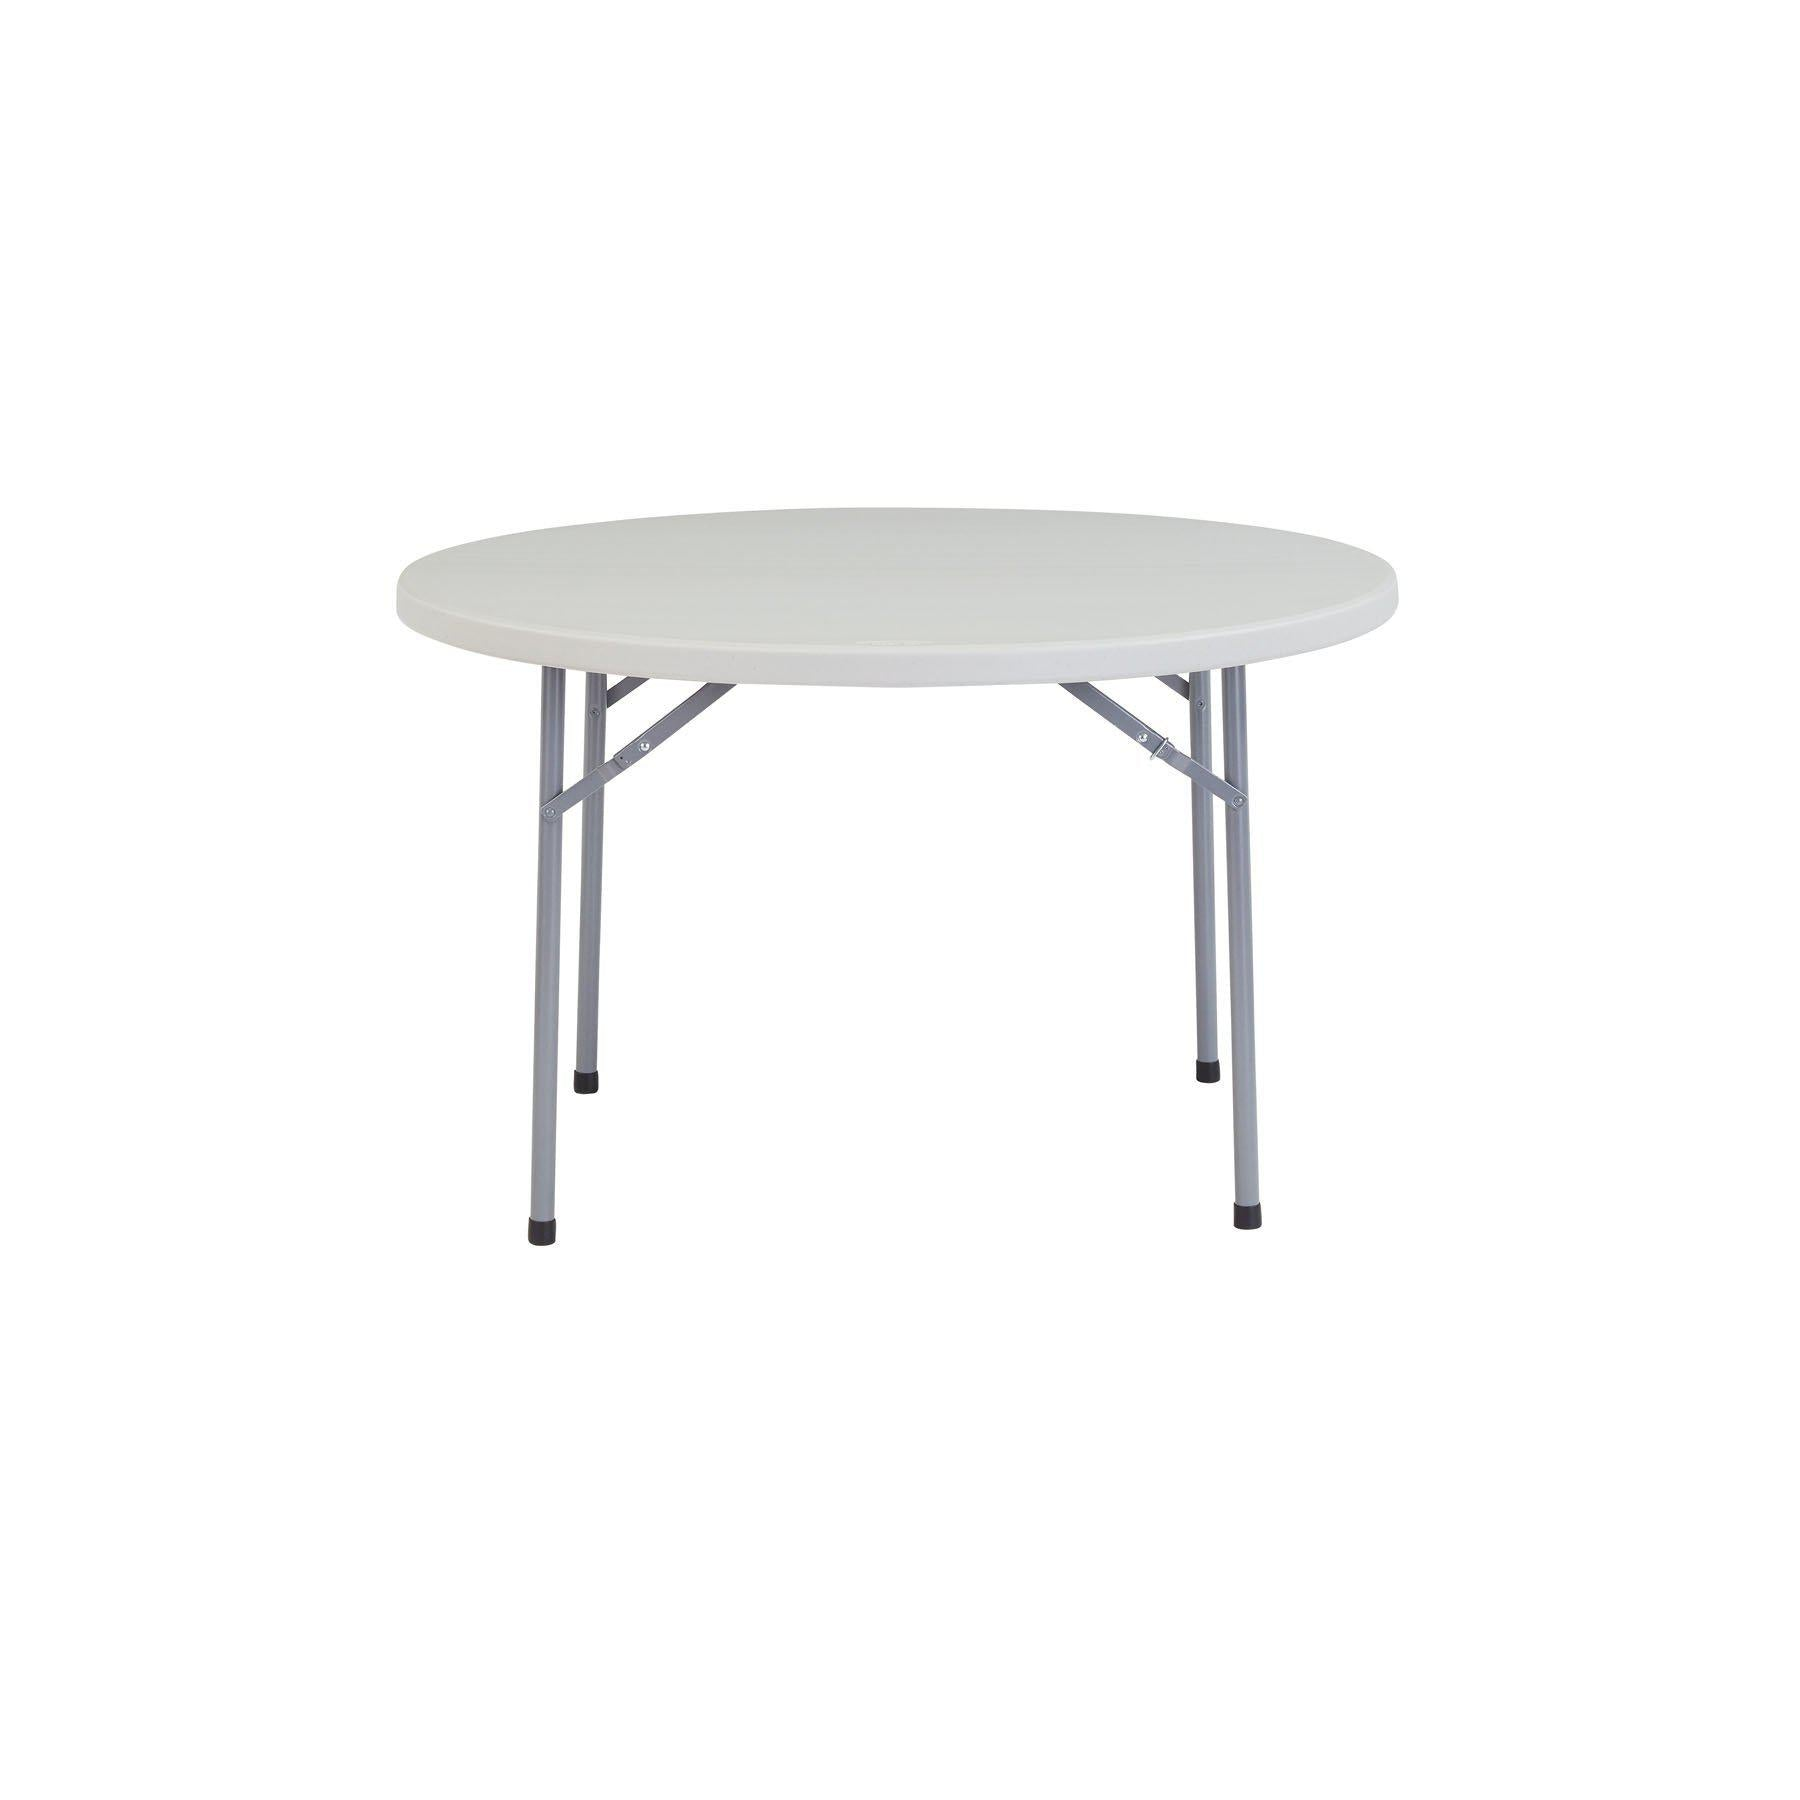 Heavy Duty Round Folding Table, Speckled Grey